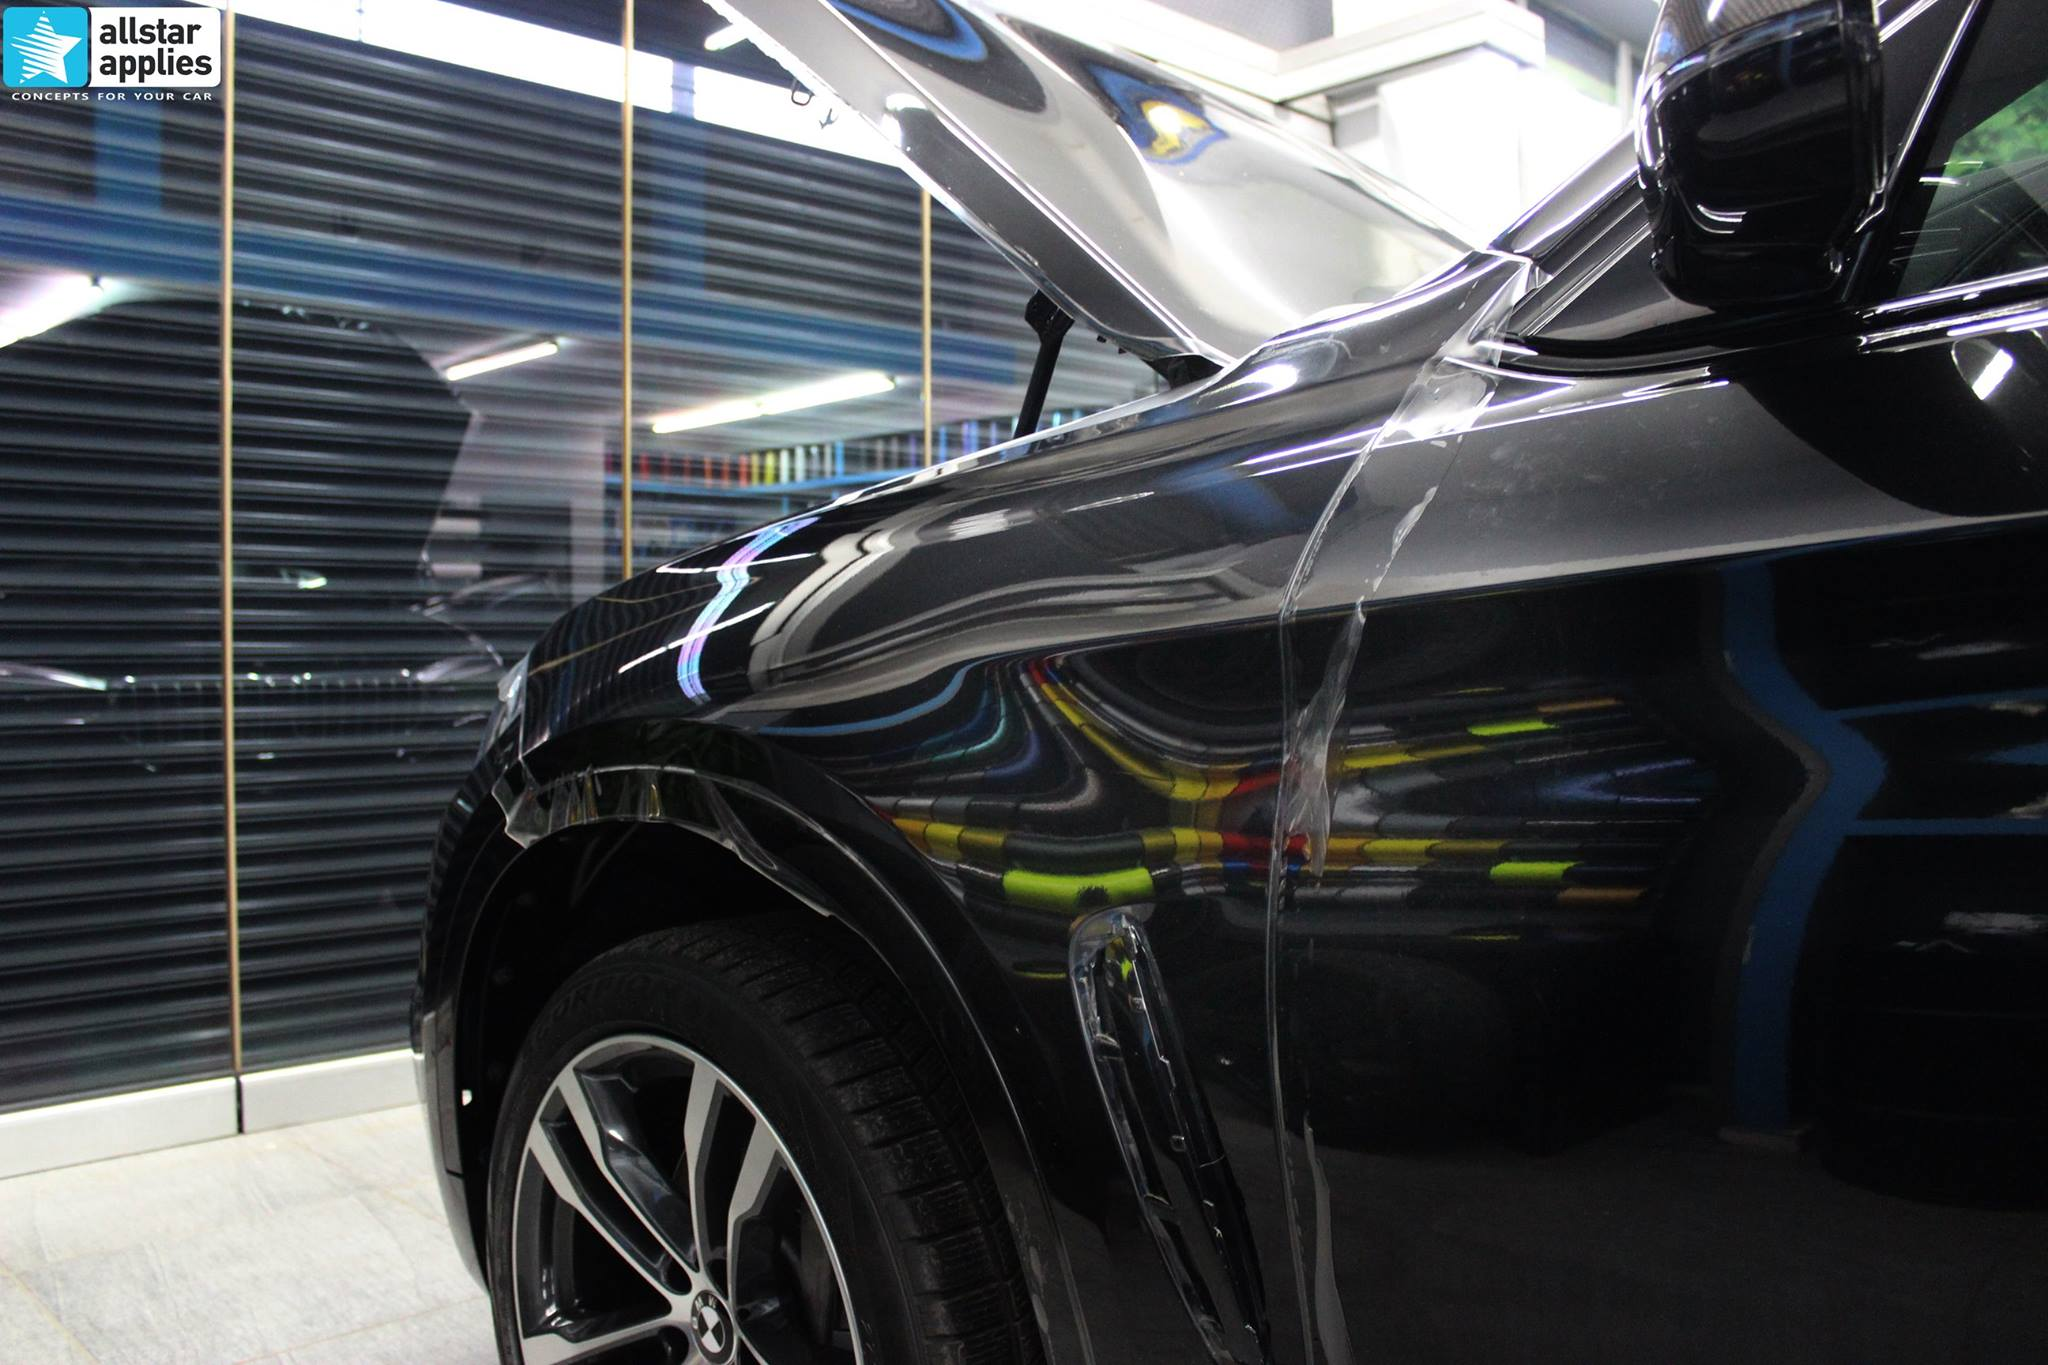 BMW X6 Μ50 - Full Paint Protection Film (9)